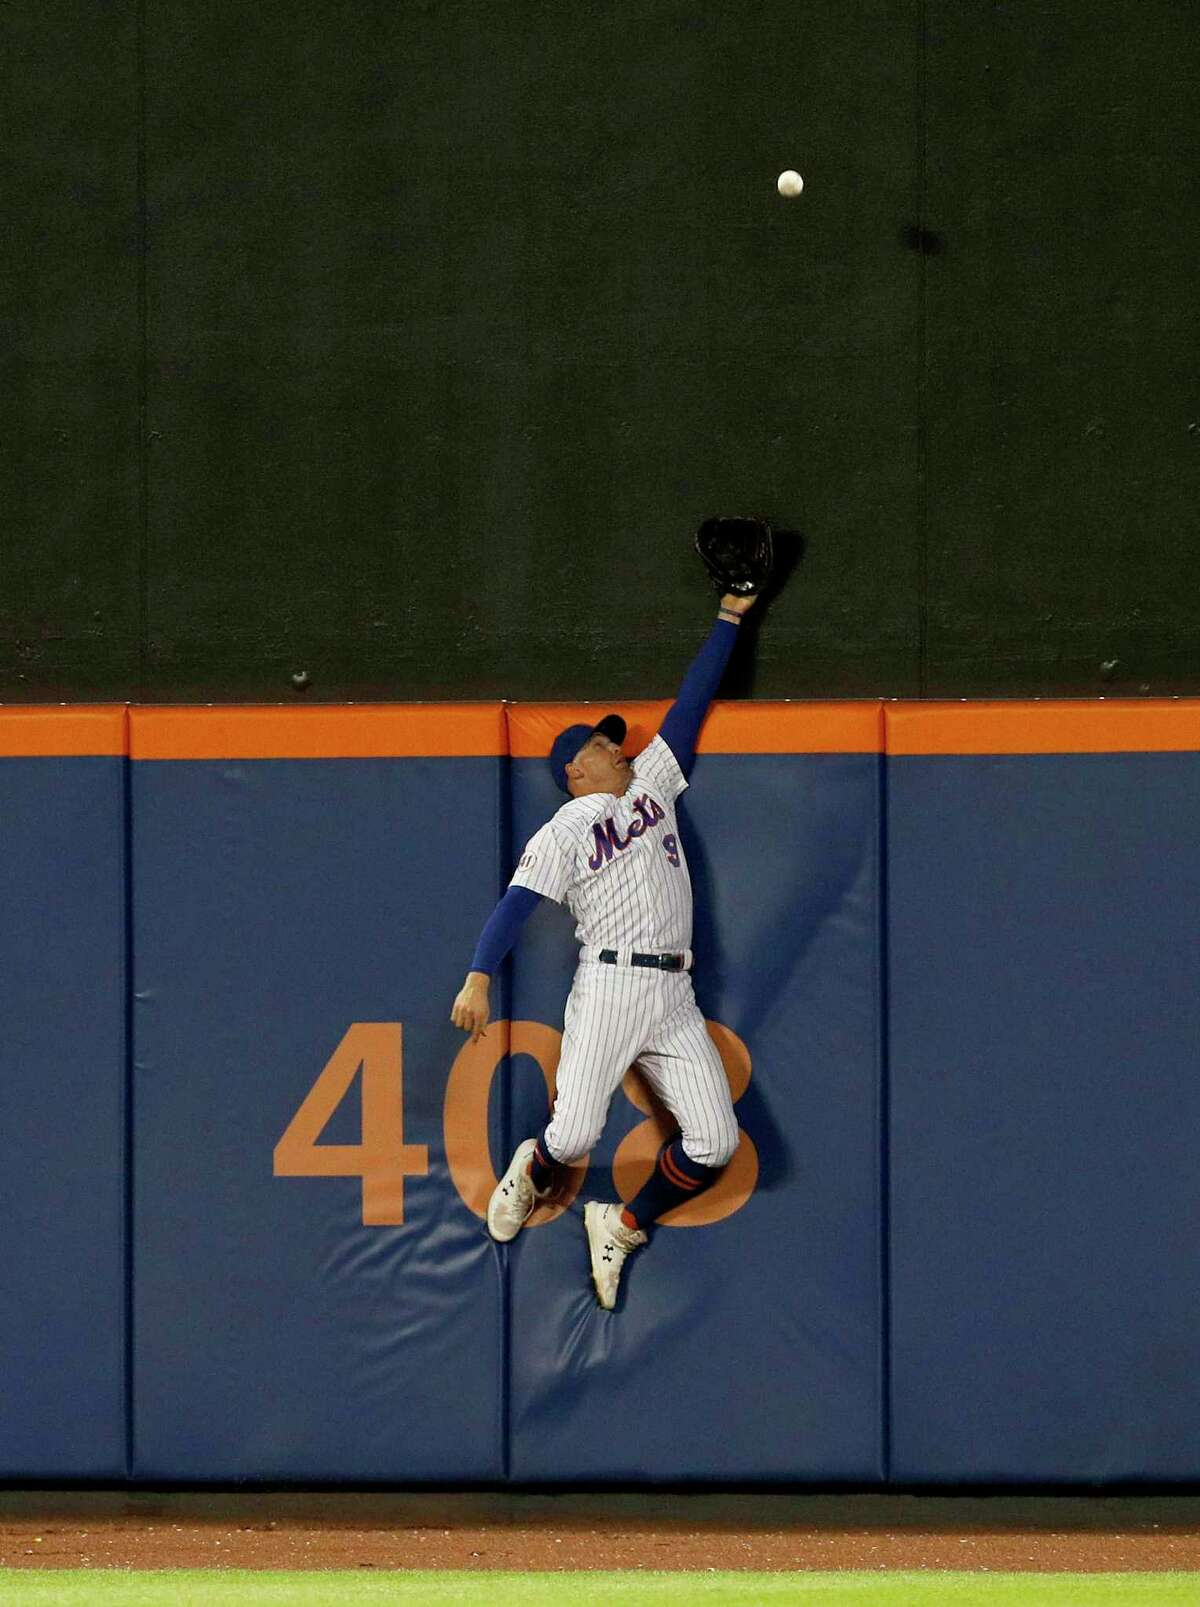 NEW YORK, NEW YORK - AUGUST 24: Brandon Nimmo #9 of the New York Mets can't come up with a ball hit by LaMonte Wade Jr. of the San Francisco Giants for a two run home run during the fourth inning at Citi Field on August 24, 2021 in New York City. (Photo by Jim McIsaac/Getty Images)